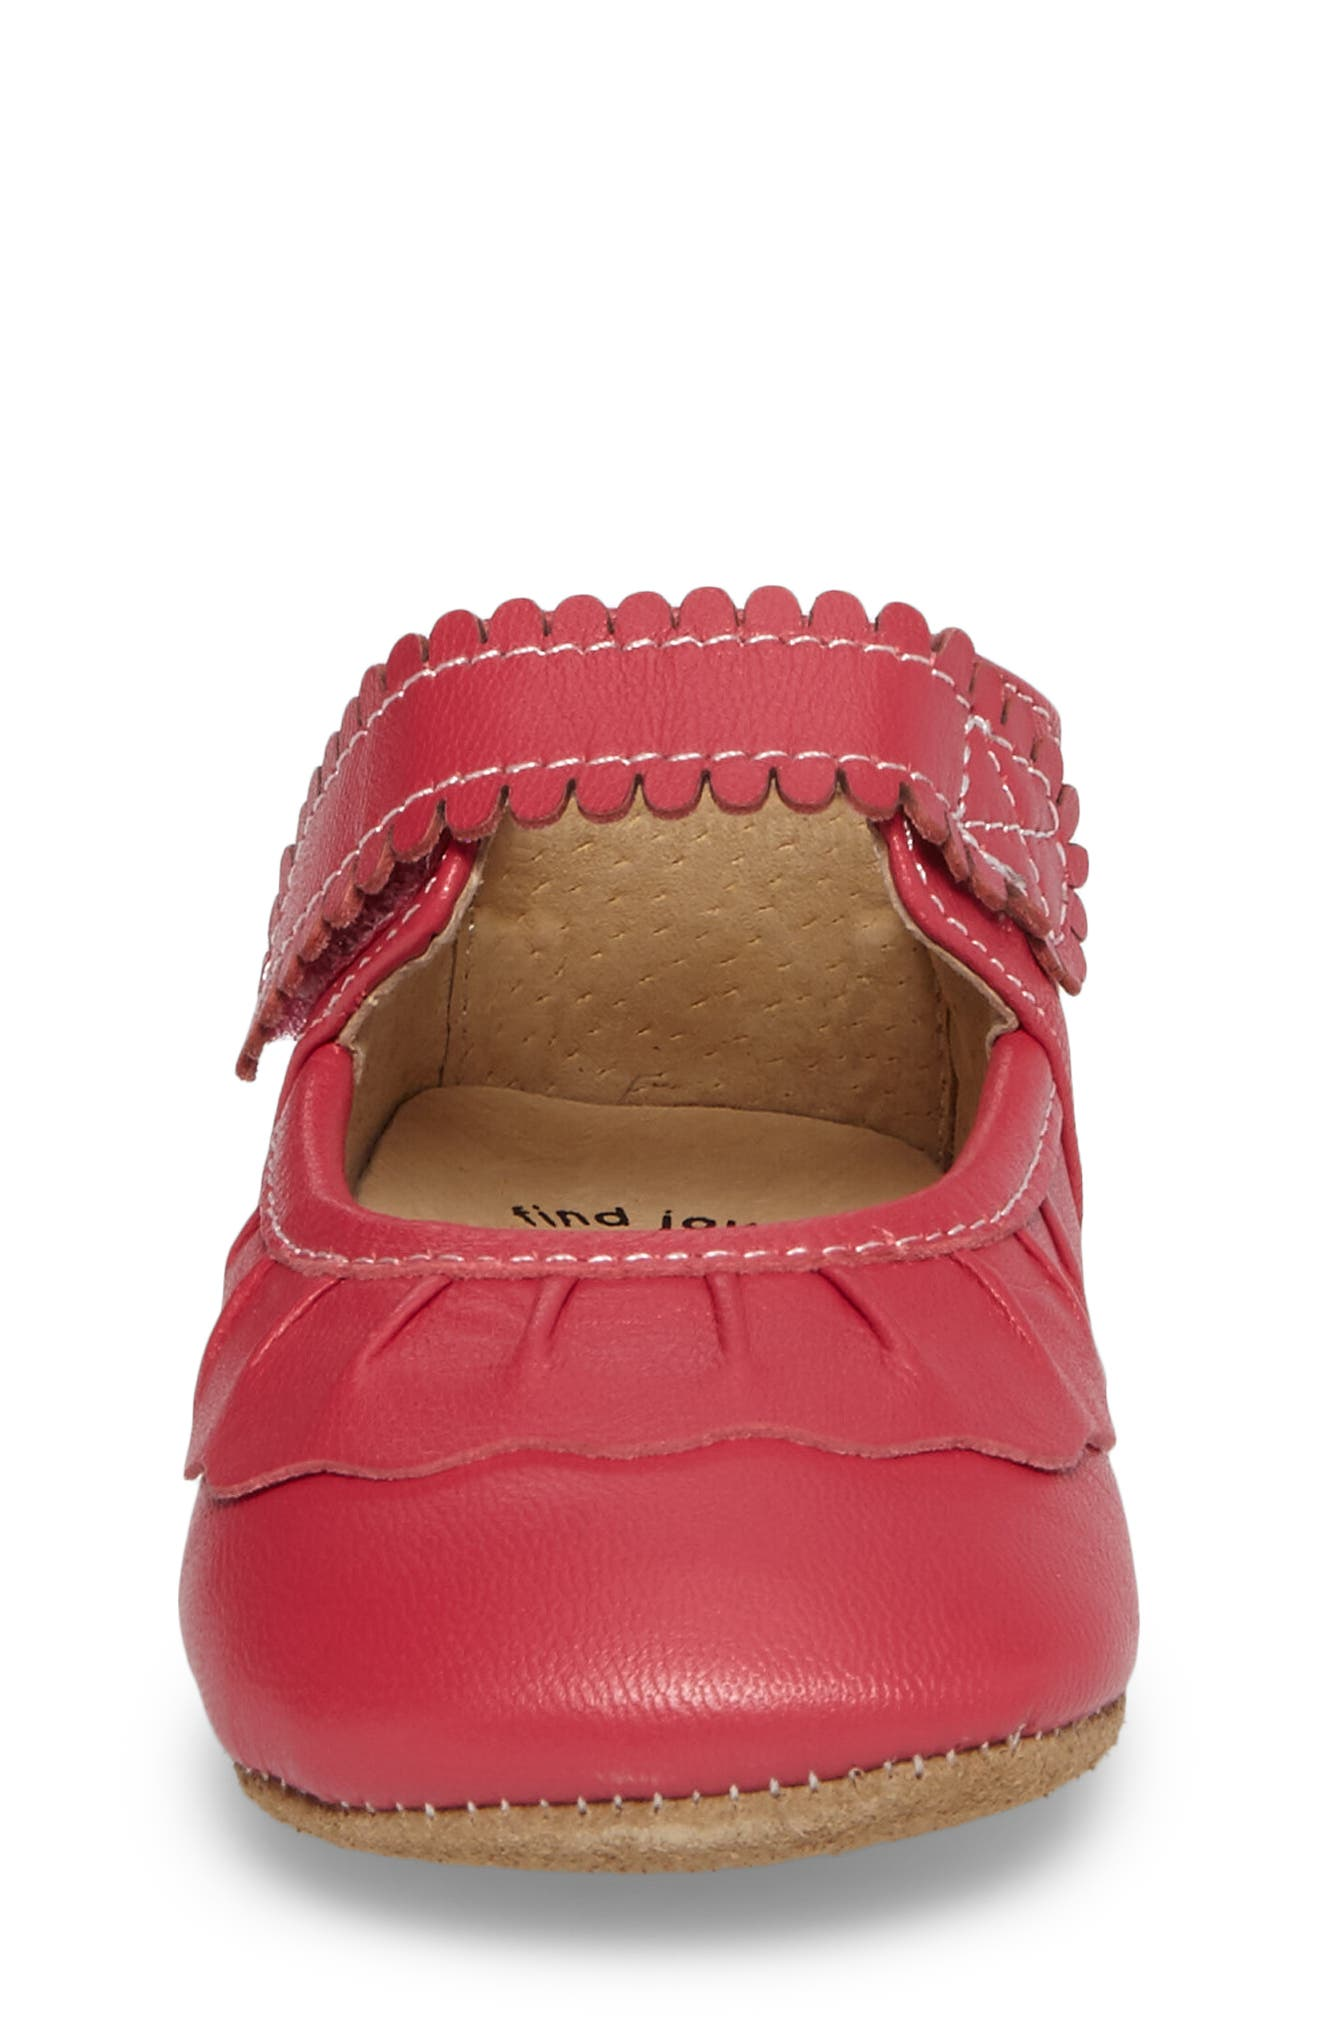 'Ruche' Mary Jane Crib Shoe,                             Alternate thumbnail 4, color,                             HOT PINK LEATHER